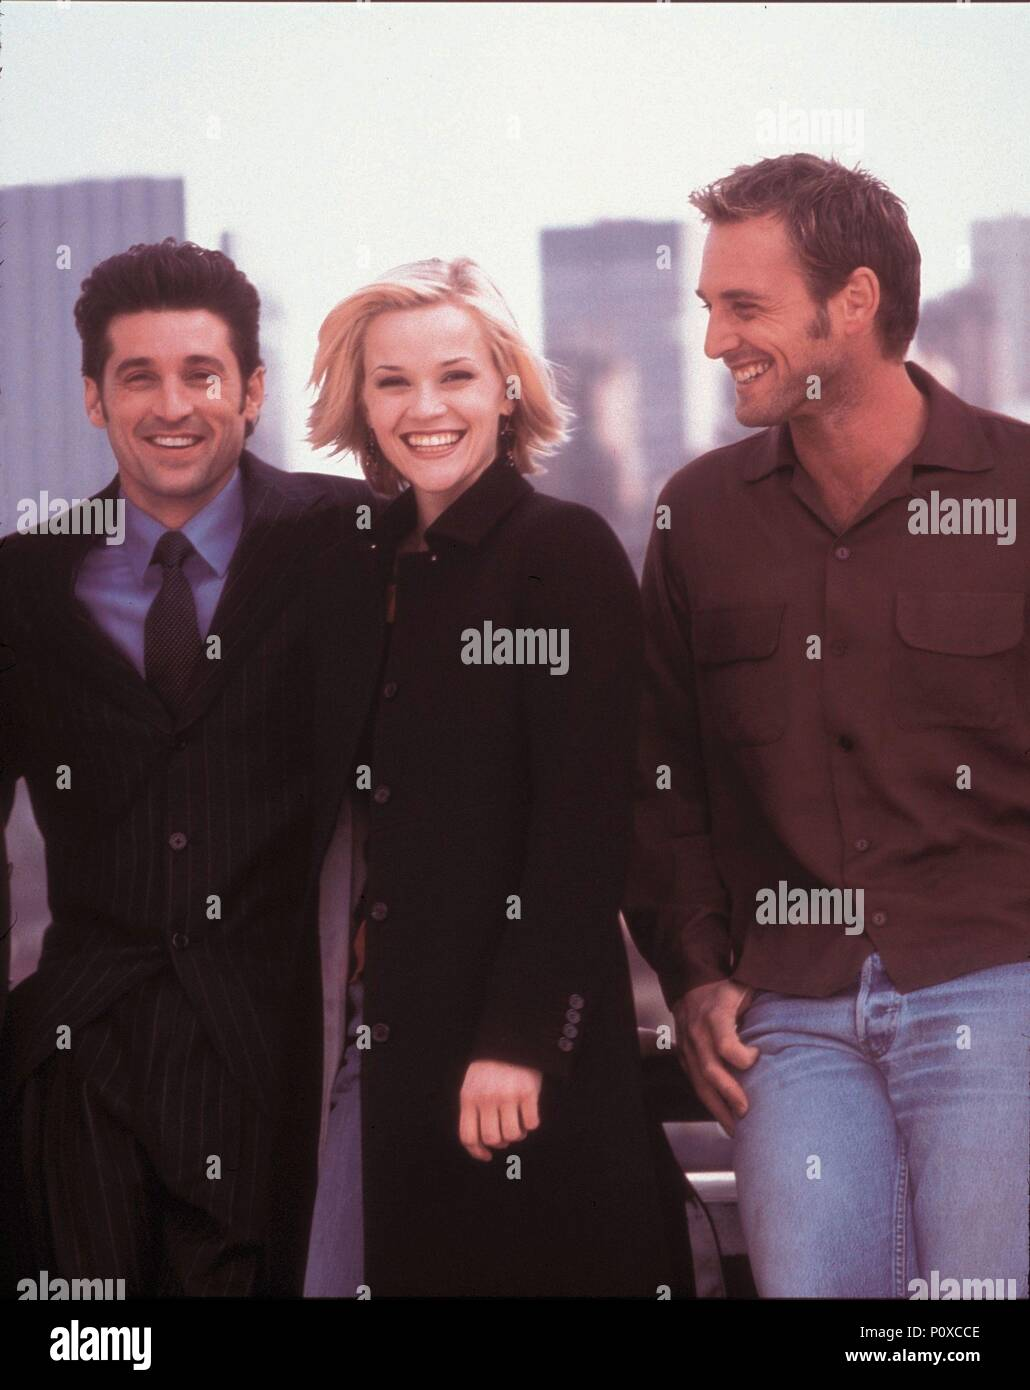 Sweet home alabama premiered on september 27, 2002 — 18 years ago. Original Film Title Sweet Home Alabama English Title Sweet Home Alabama Film Director Andy Tennant Year 2002 Stars Reese Witherspoon Patrick Dempsey Josh Lucas Credit Touchstone Pictures Album Stock Photo Alamy